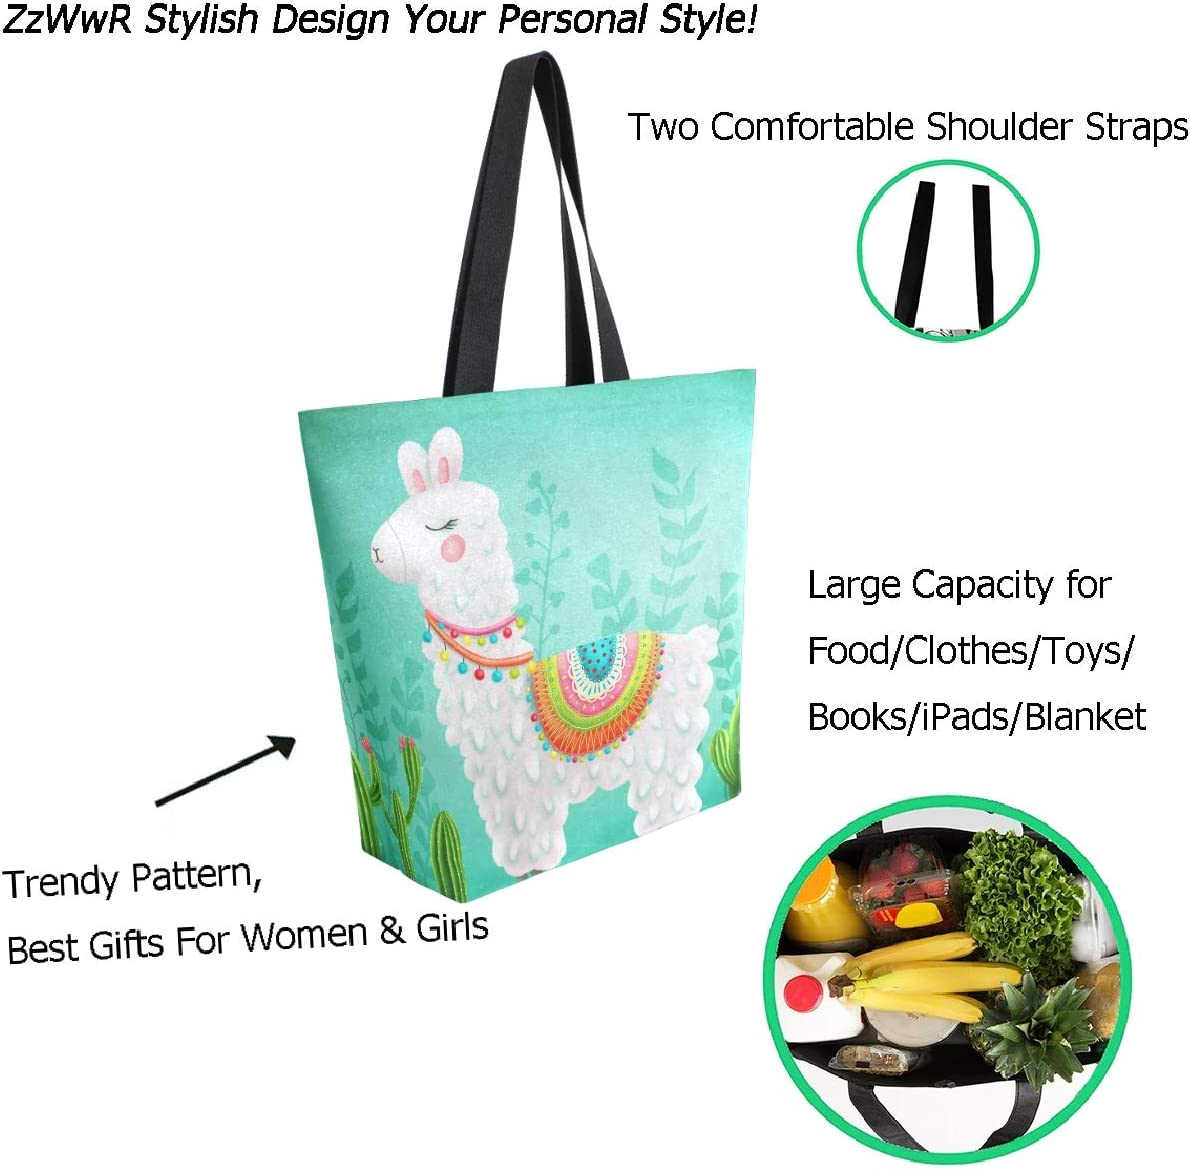 Women Folk Art Dinosaurs Large Tote Bag Shoulder Bag Lightweight For Gym Hiking Picnic Travel Beach Waterproof Handbag